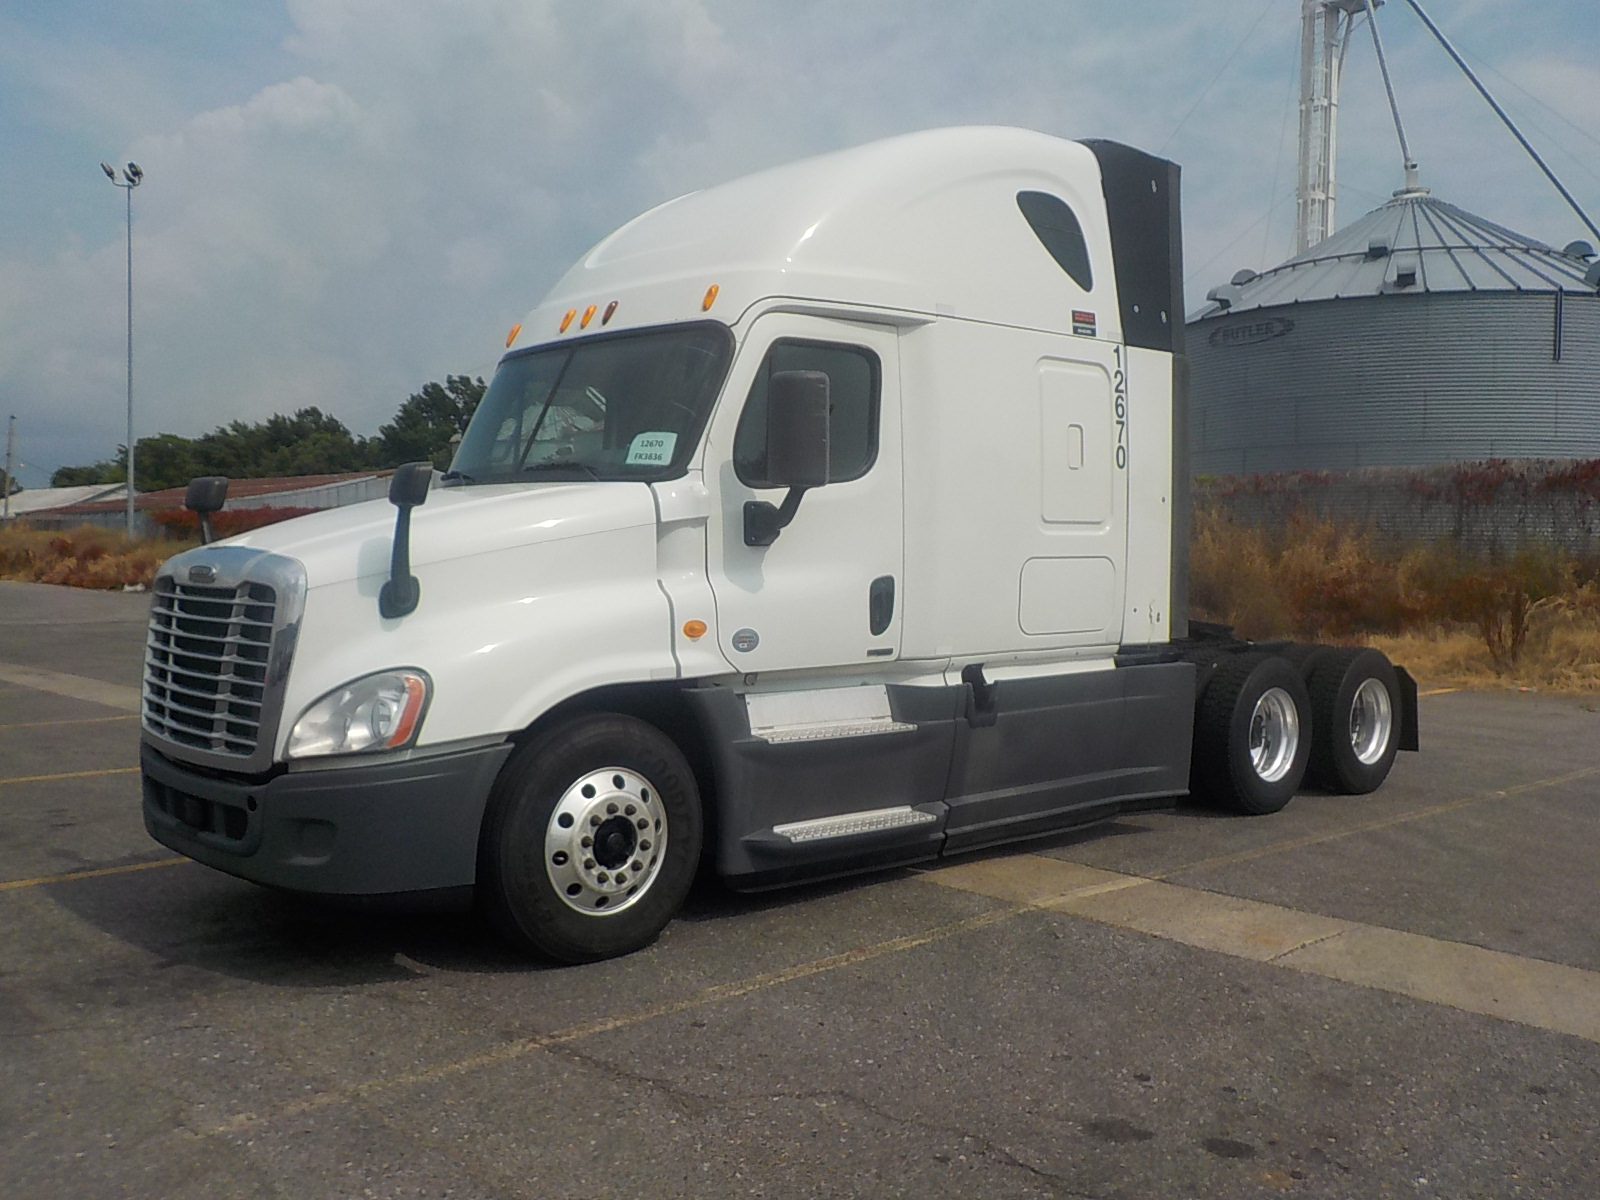 USED 2014 FREIGHTLINER CASCADIA SLEEPER TRUCK #84569